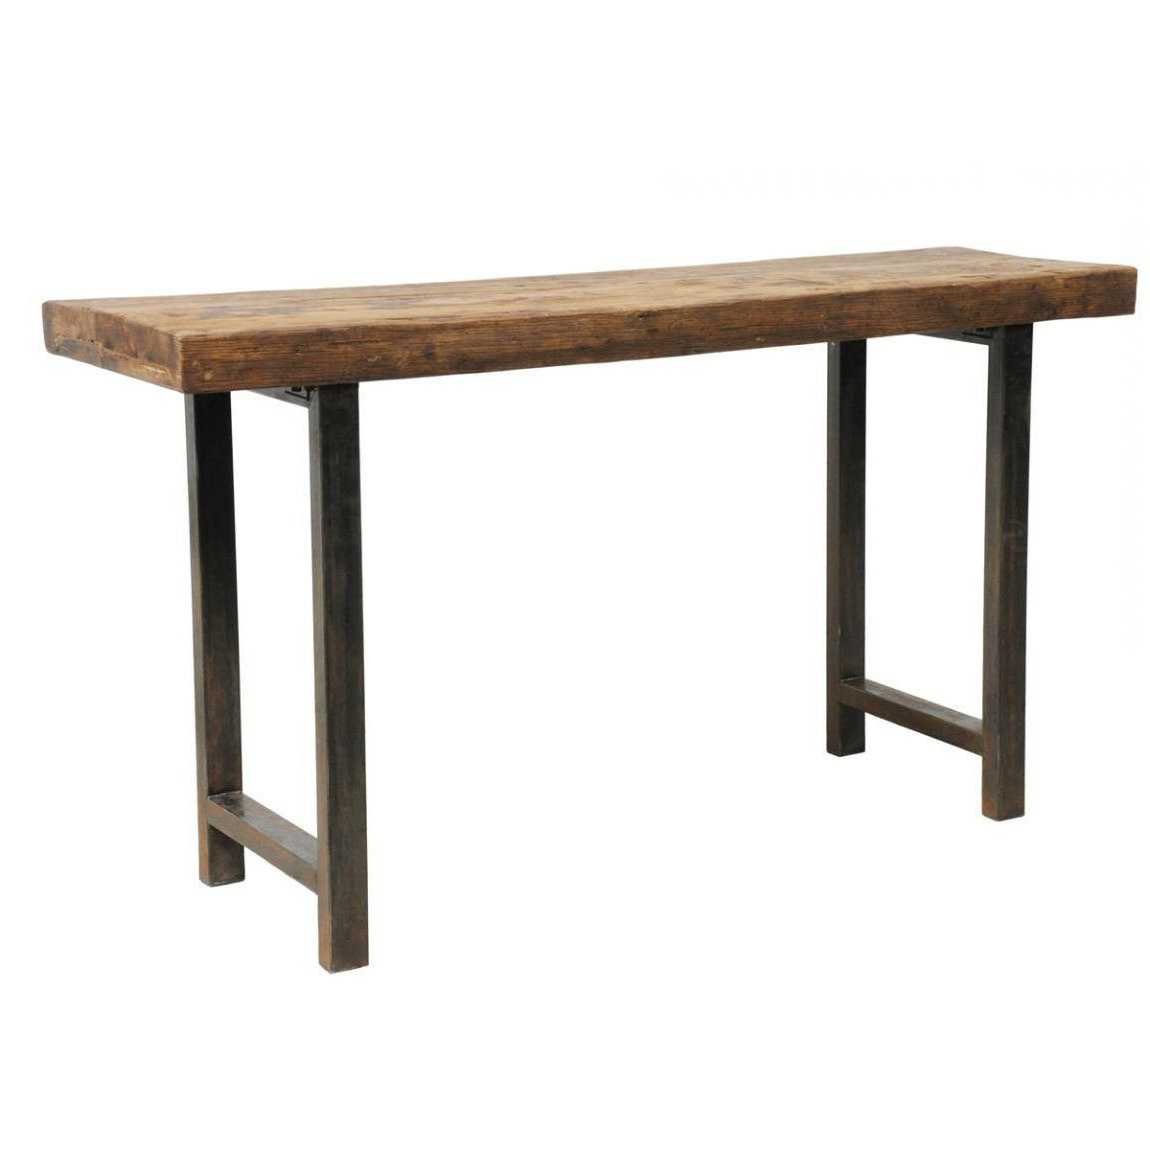 Elinor Tall Slim Desk | Desk | Pinterest | Desks, House Projects And Pertaining To Era Limestone Console Tables (View 12 of 20)